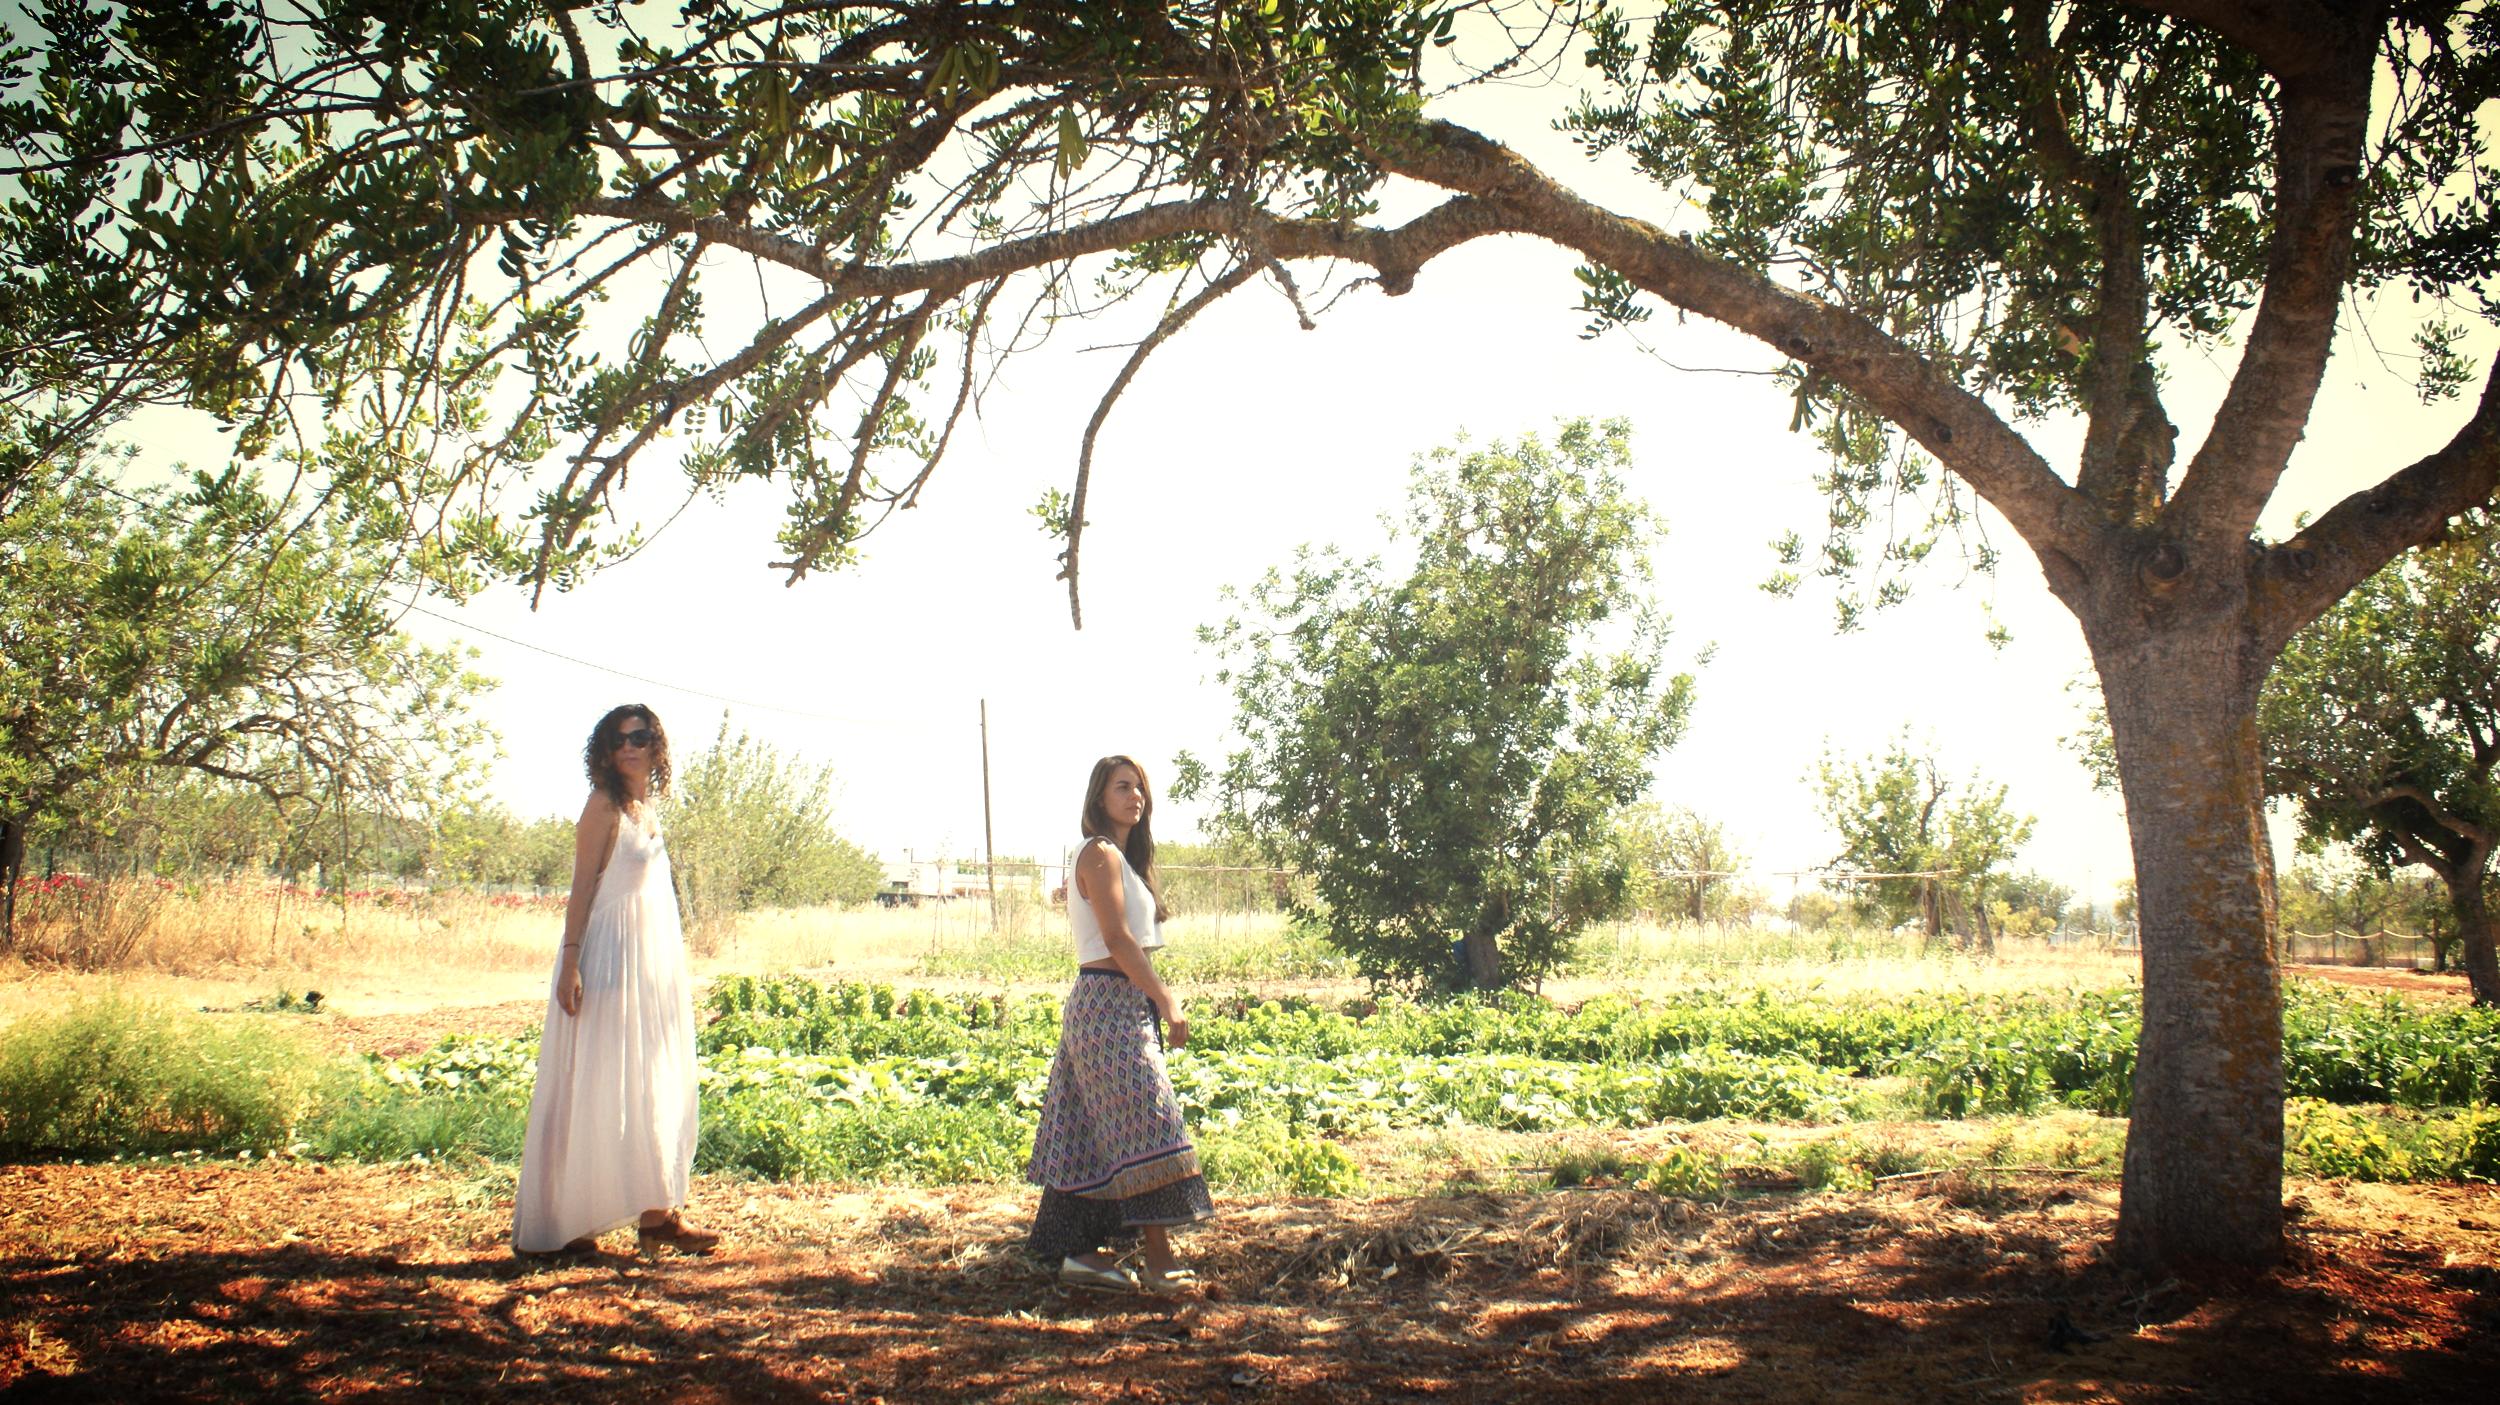 Laura & Carmen, IbizaFoodLovers founders at Aubergine's orchard